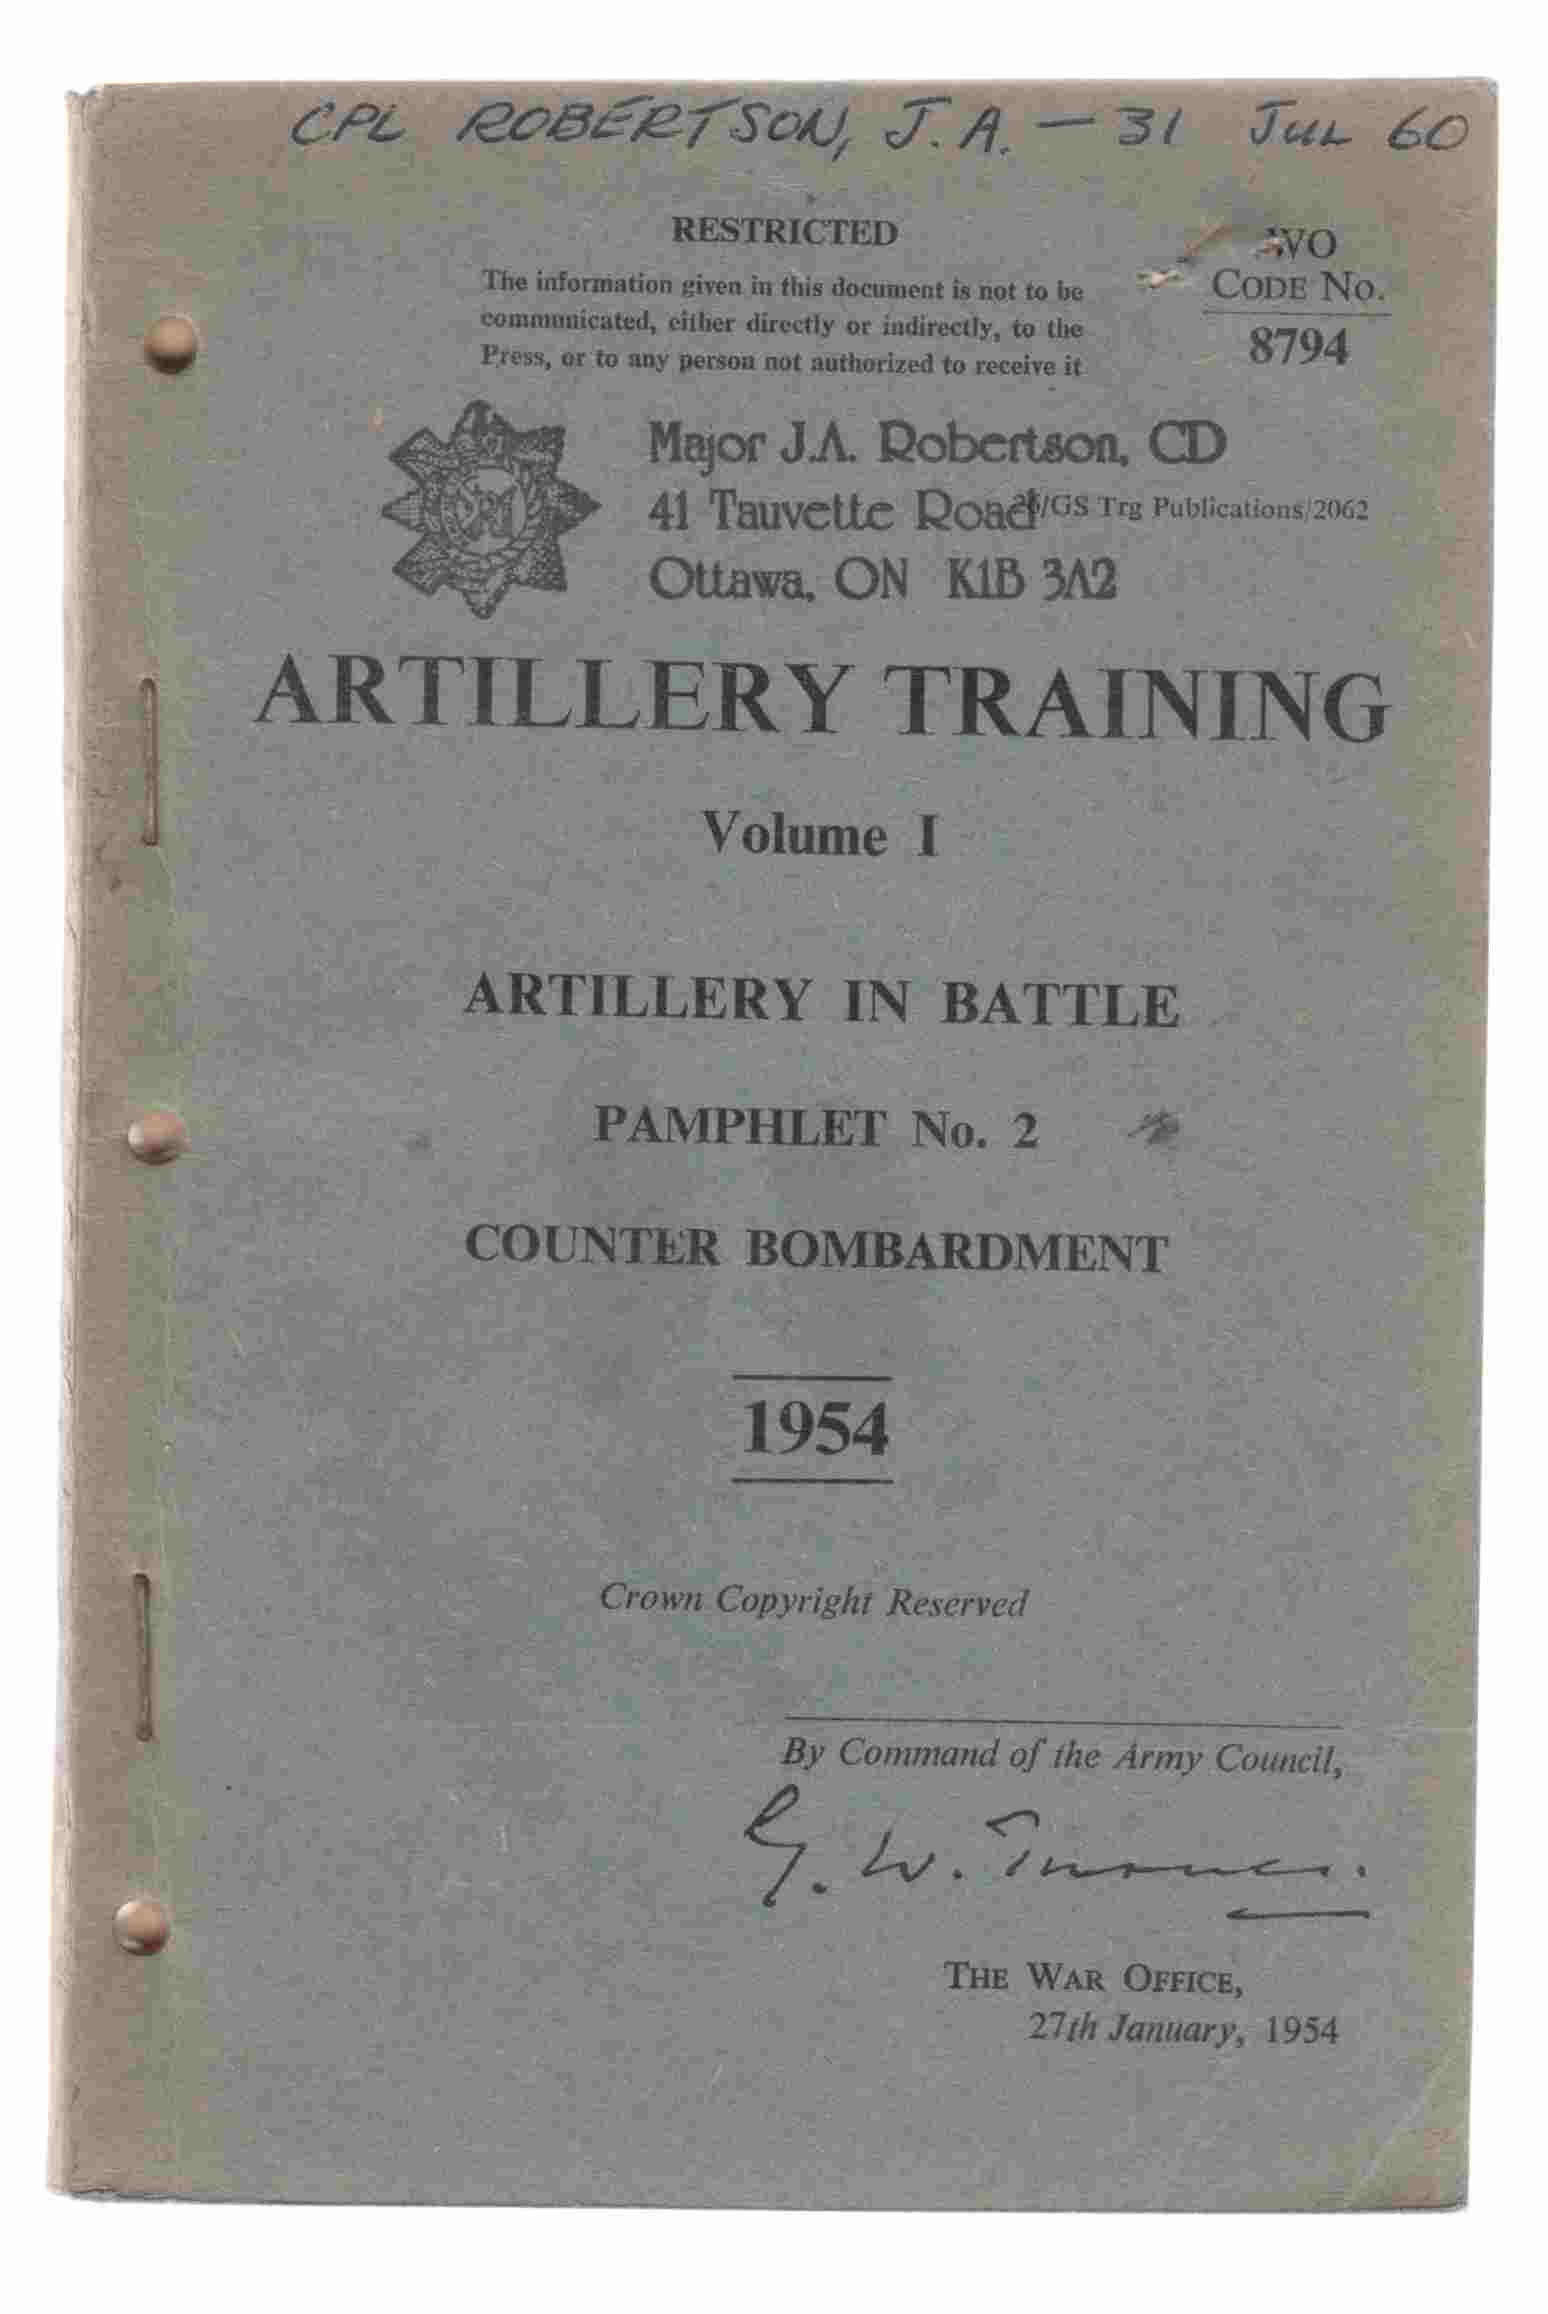 Image for Artillery Training Volume I Artillery in Battle Pamphlet No. 2 Counter Bombardment 1954